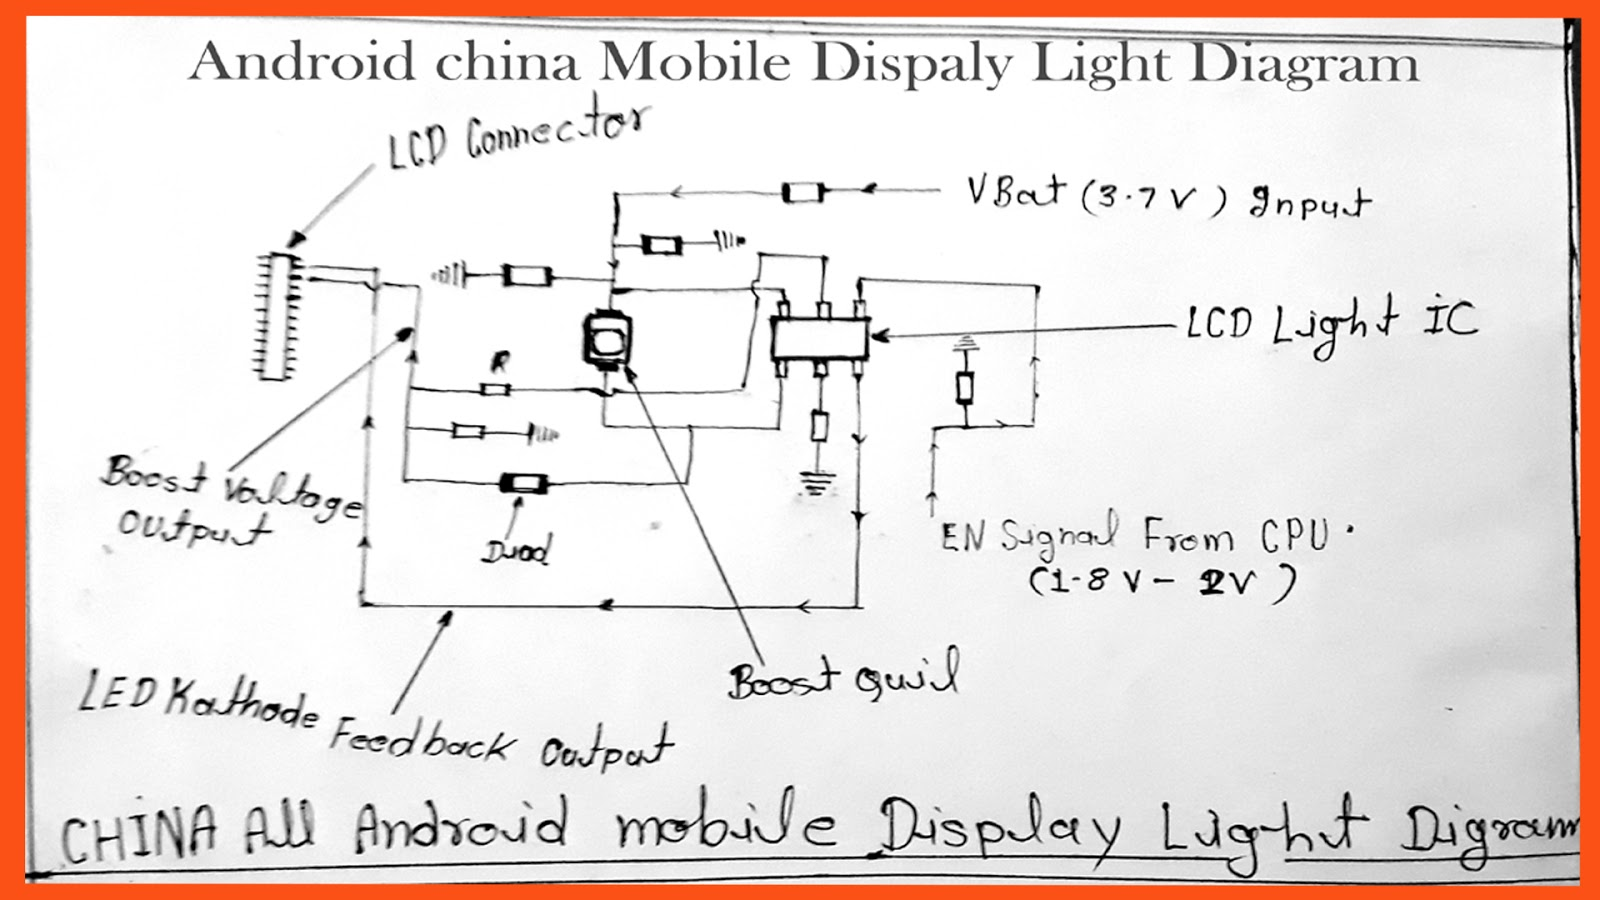 All China Android Mobile Display Light Diagram | Lava karbonn